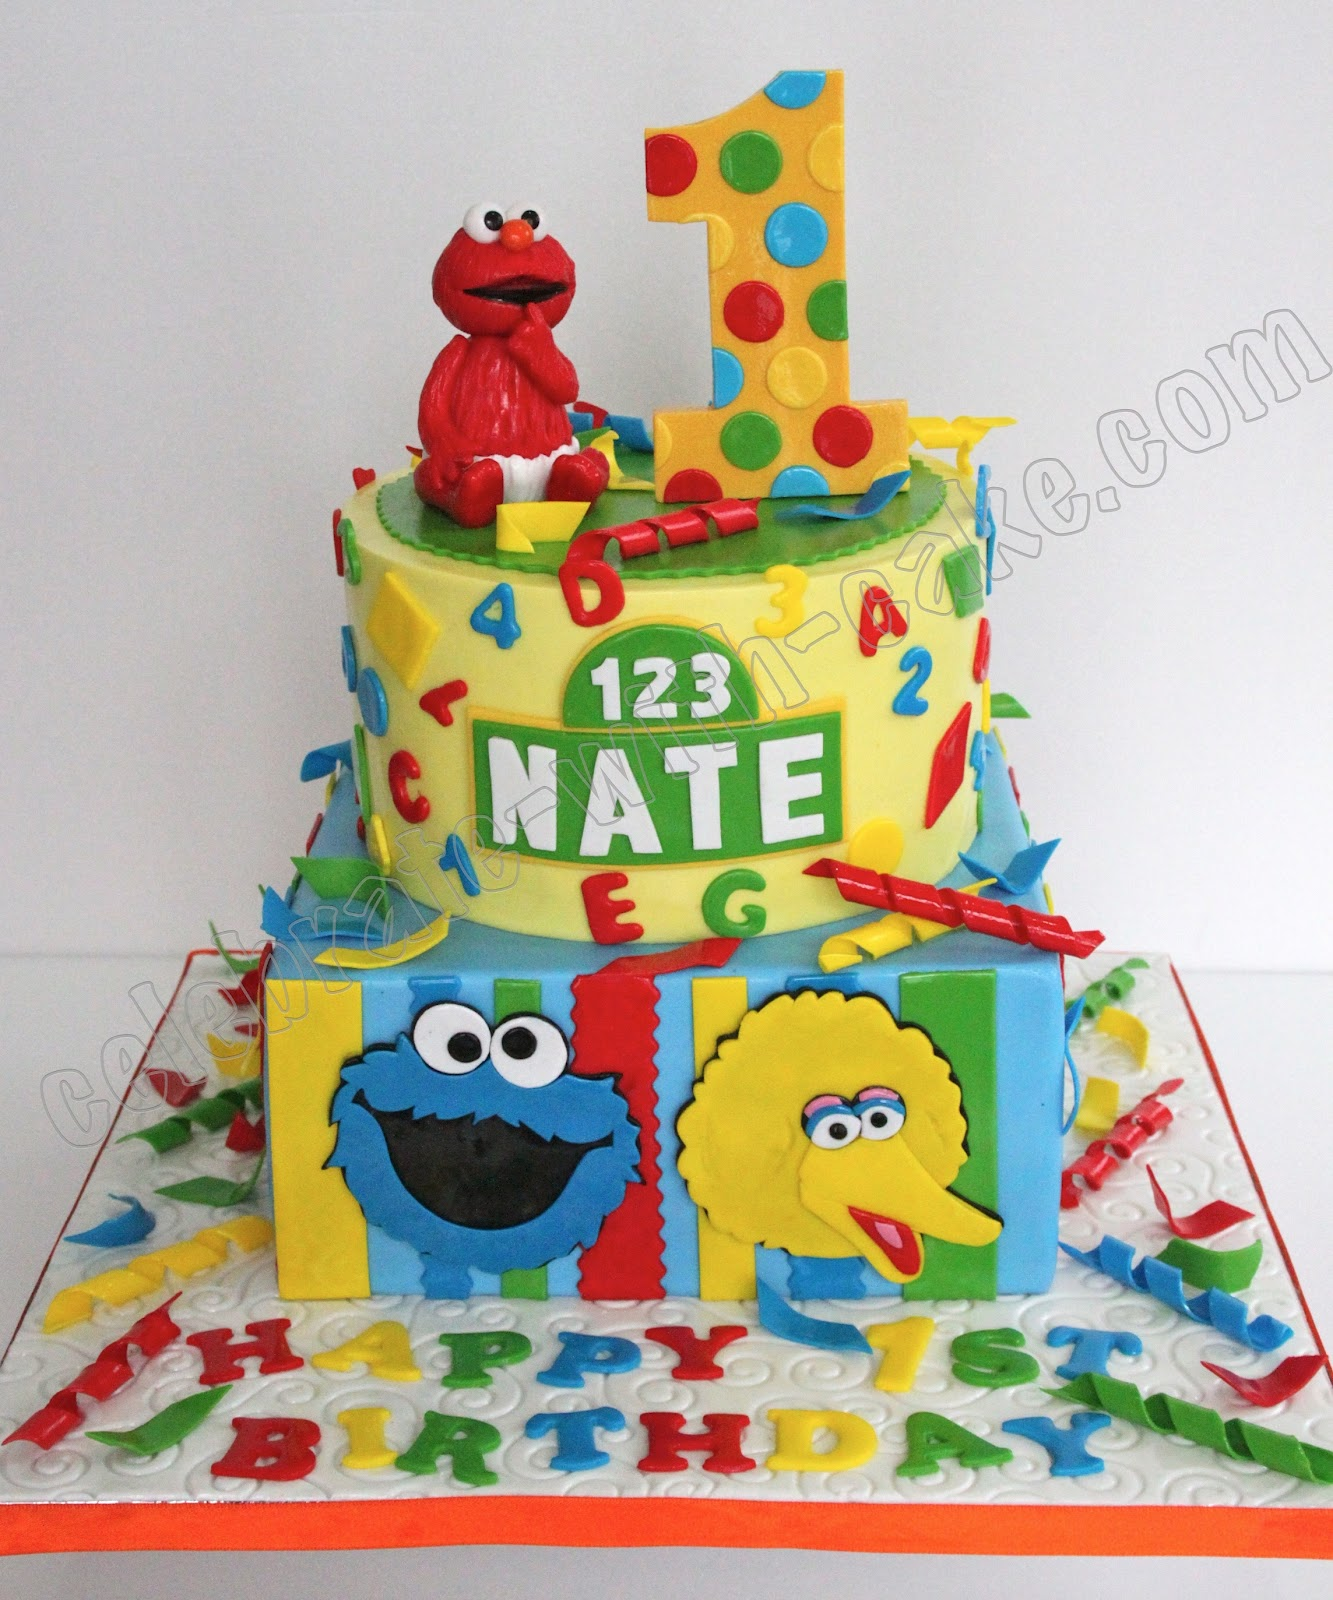 Celebrate with Cake Sesame Street Themed Cake